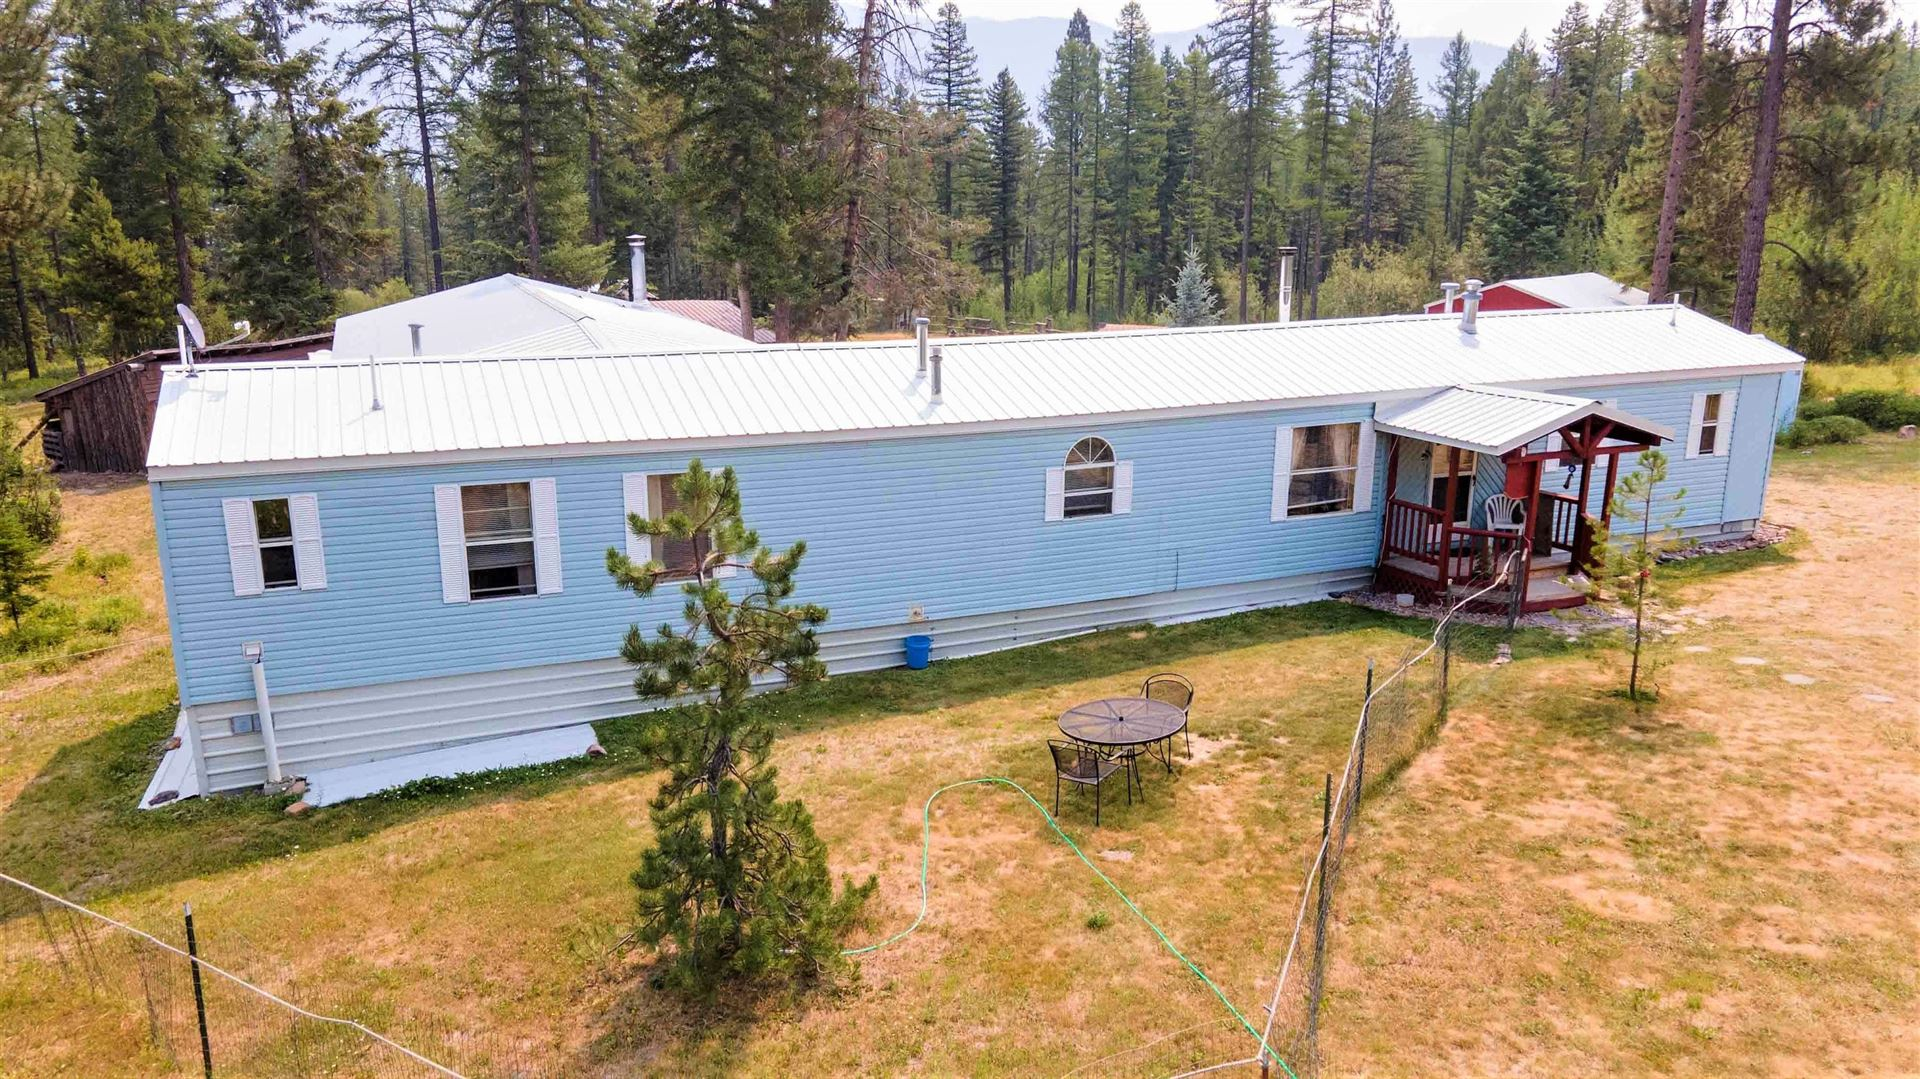 Photo of 1064 Grizzly Mountain Road, Missoula, MT 59808 (MLS # 22111689)